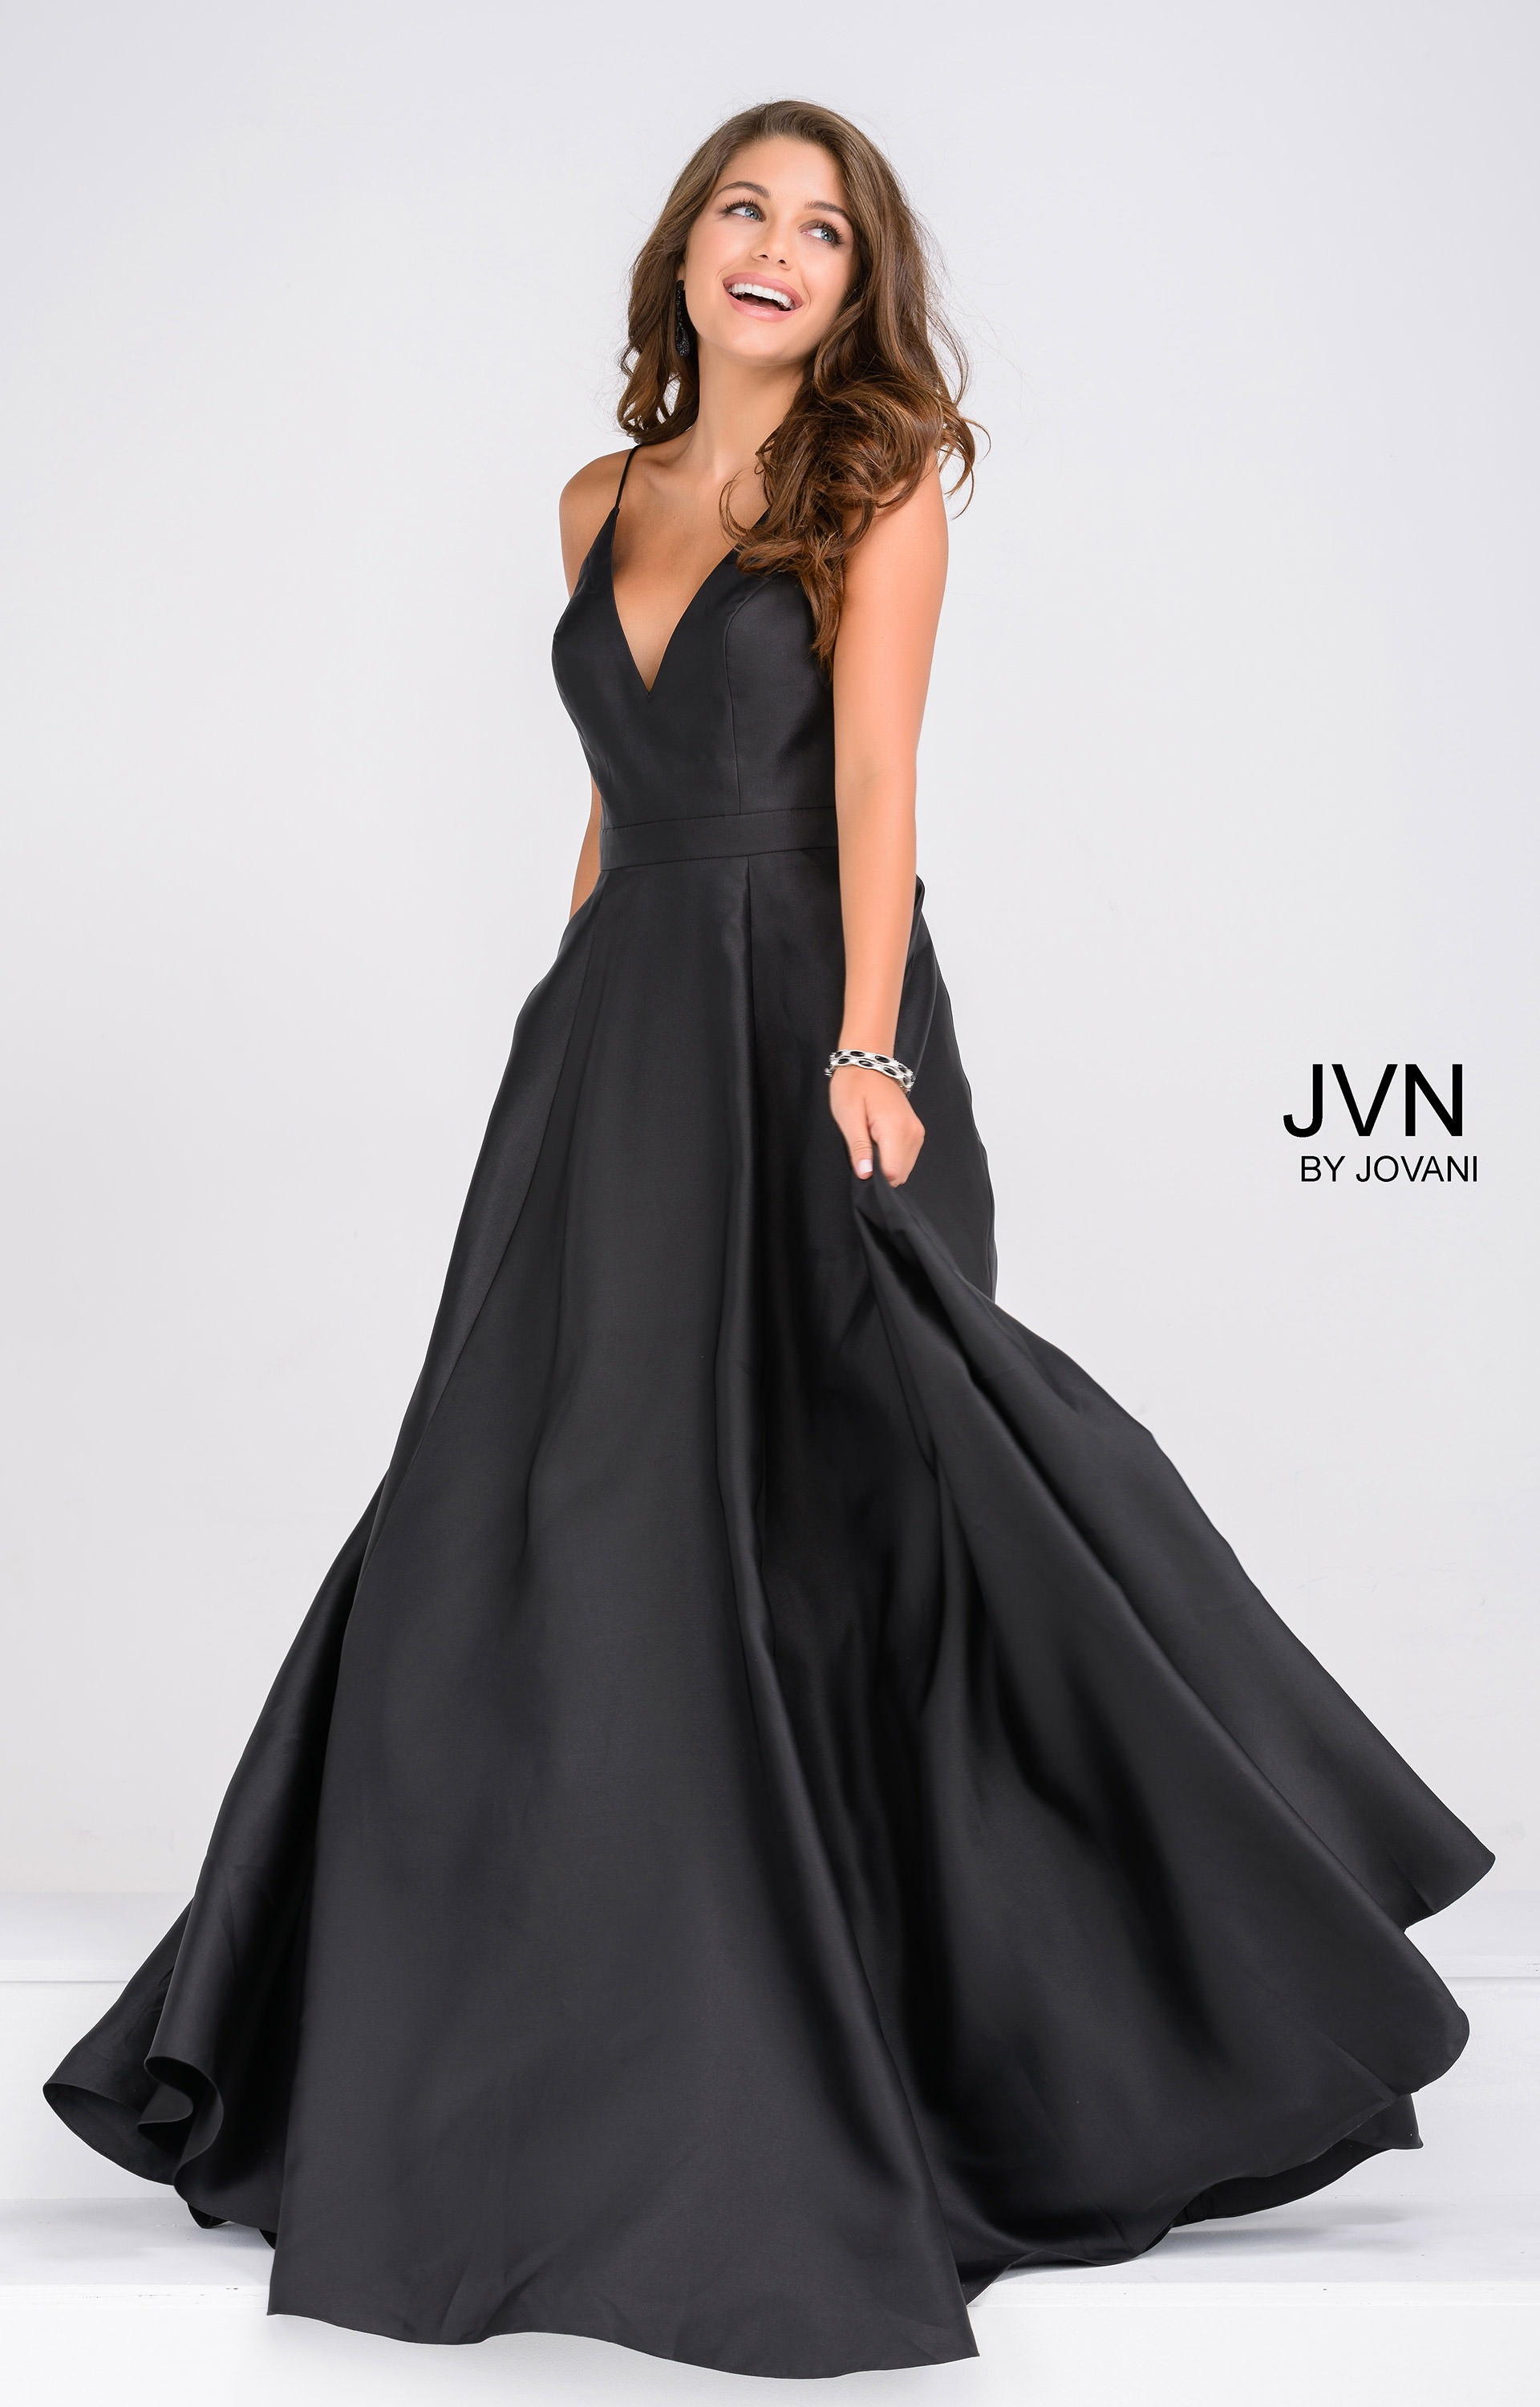 46d4502e1acf9 Jovani Ball Gown With Pockets - Down To Earth Bali